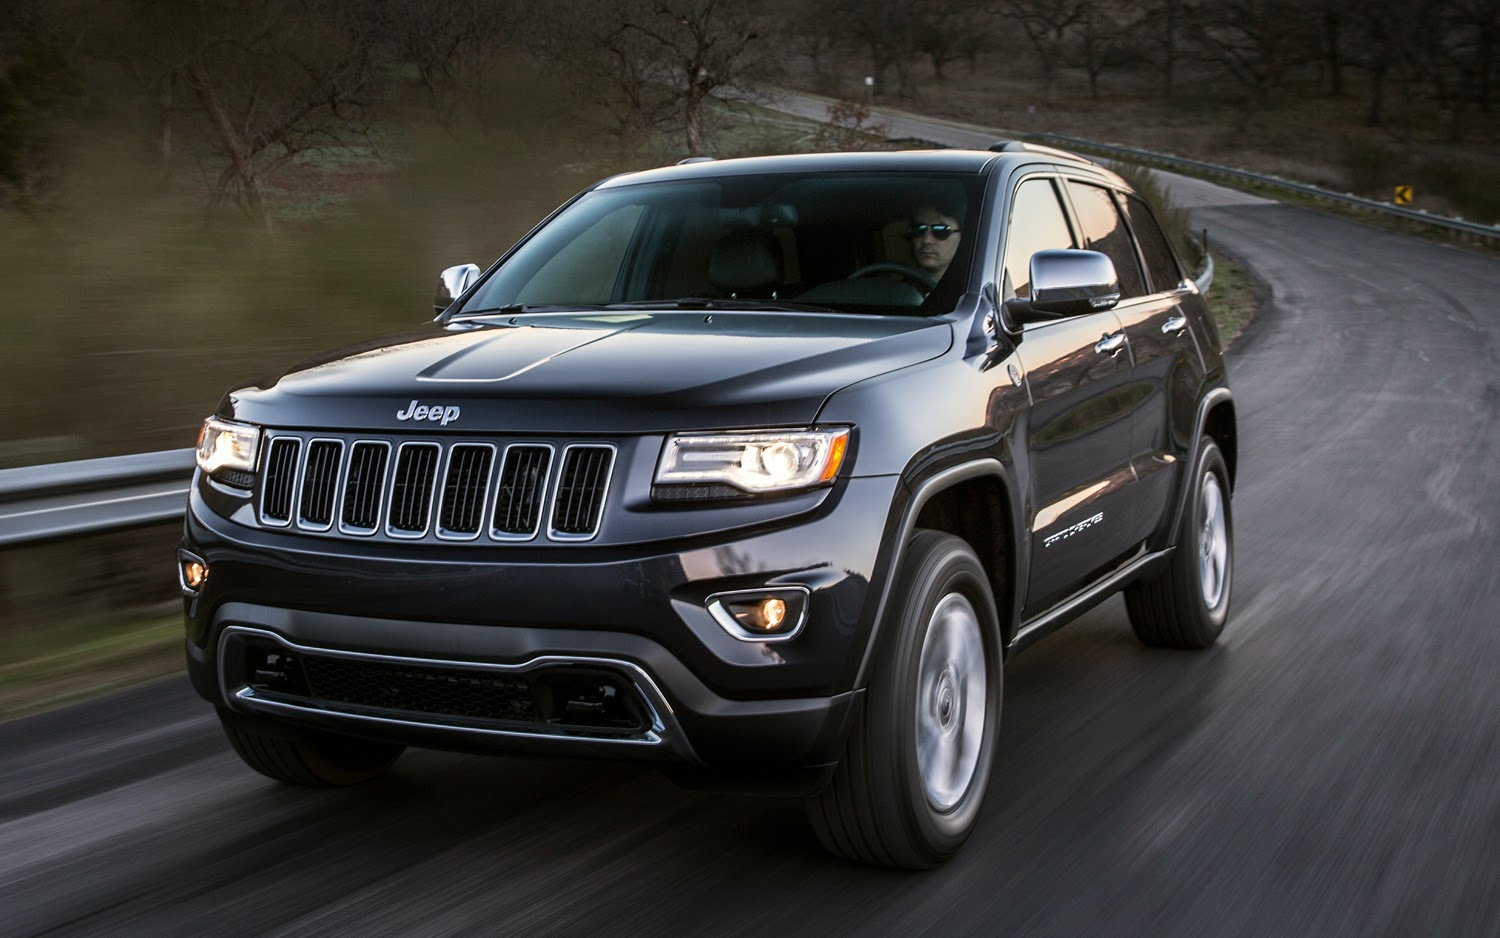 2014 jeep grand cherokee review and pictures auto review 2014. Black Bedroom Furniture Sets. Home Design Ideas